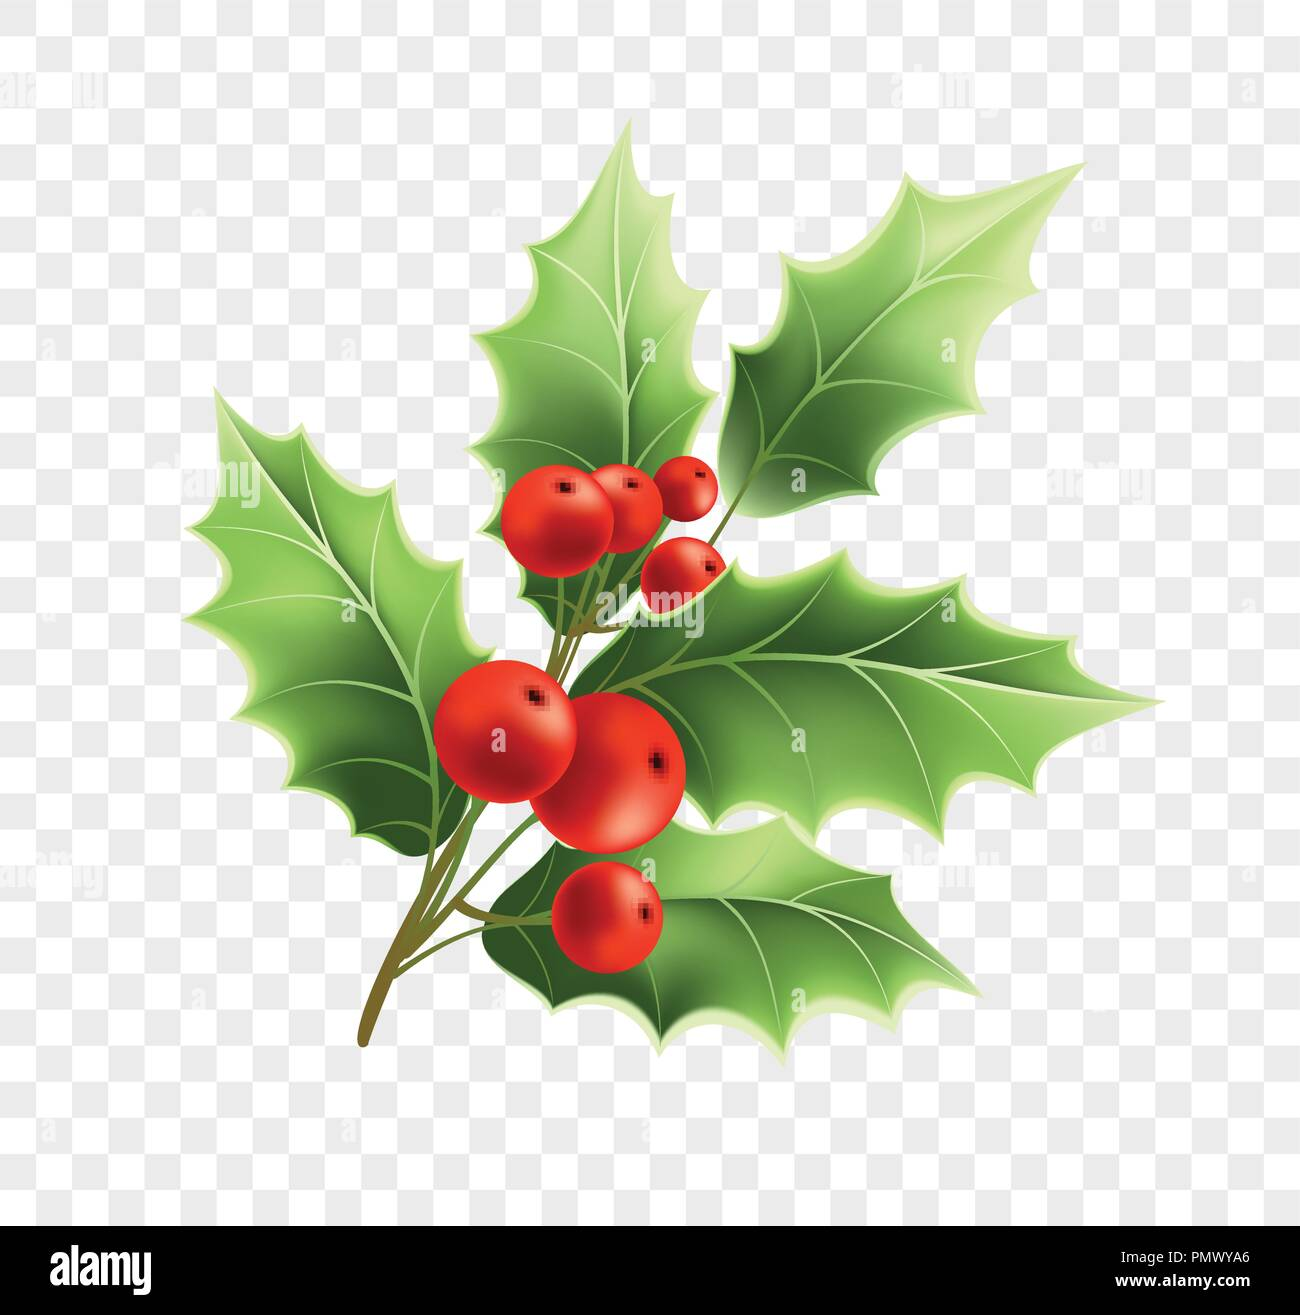 Christmas holly twig realistic illustration - Stock Vector